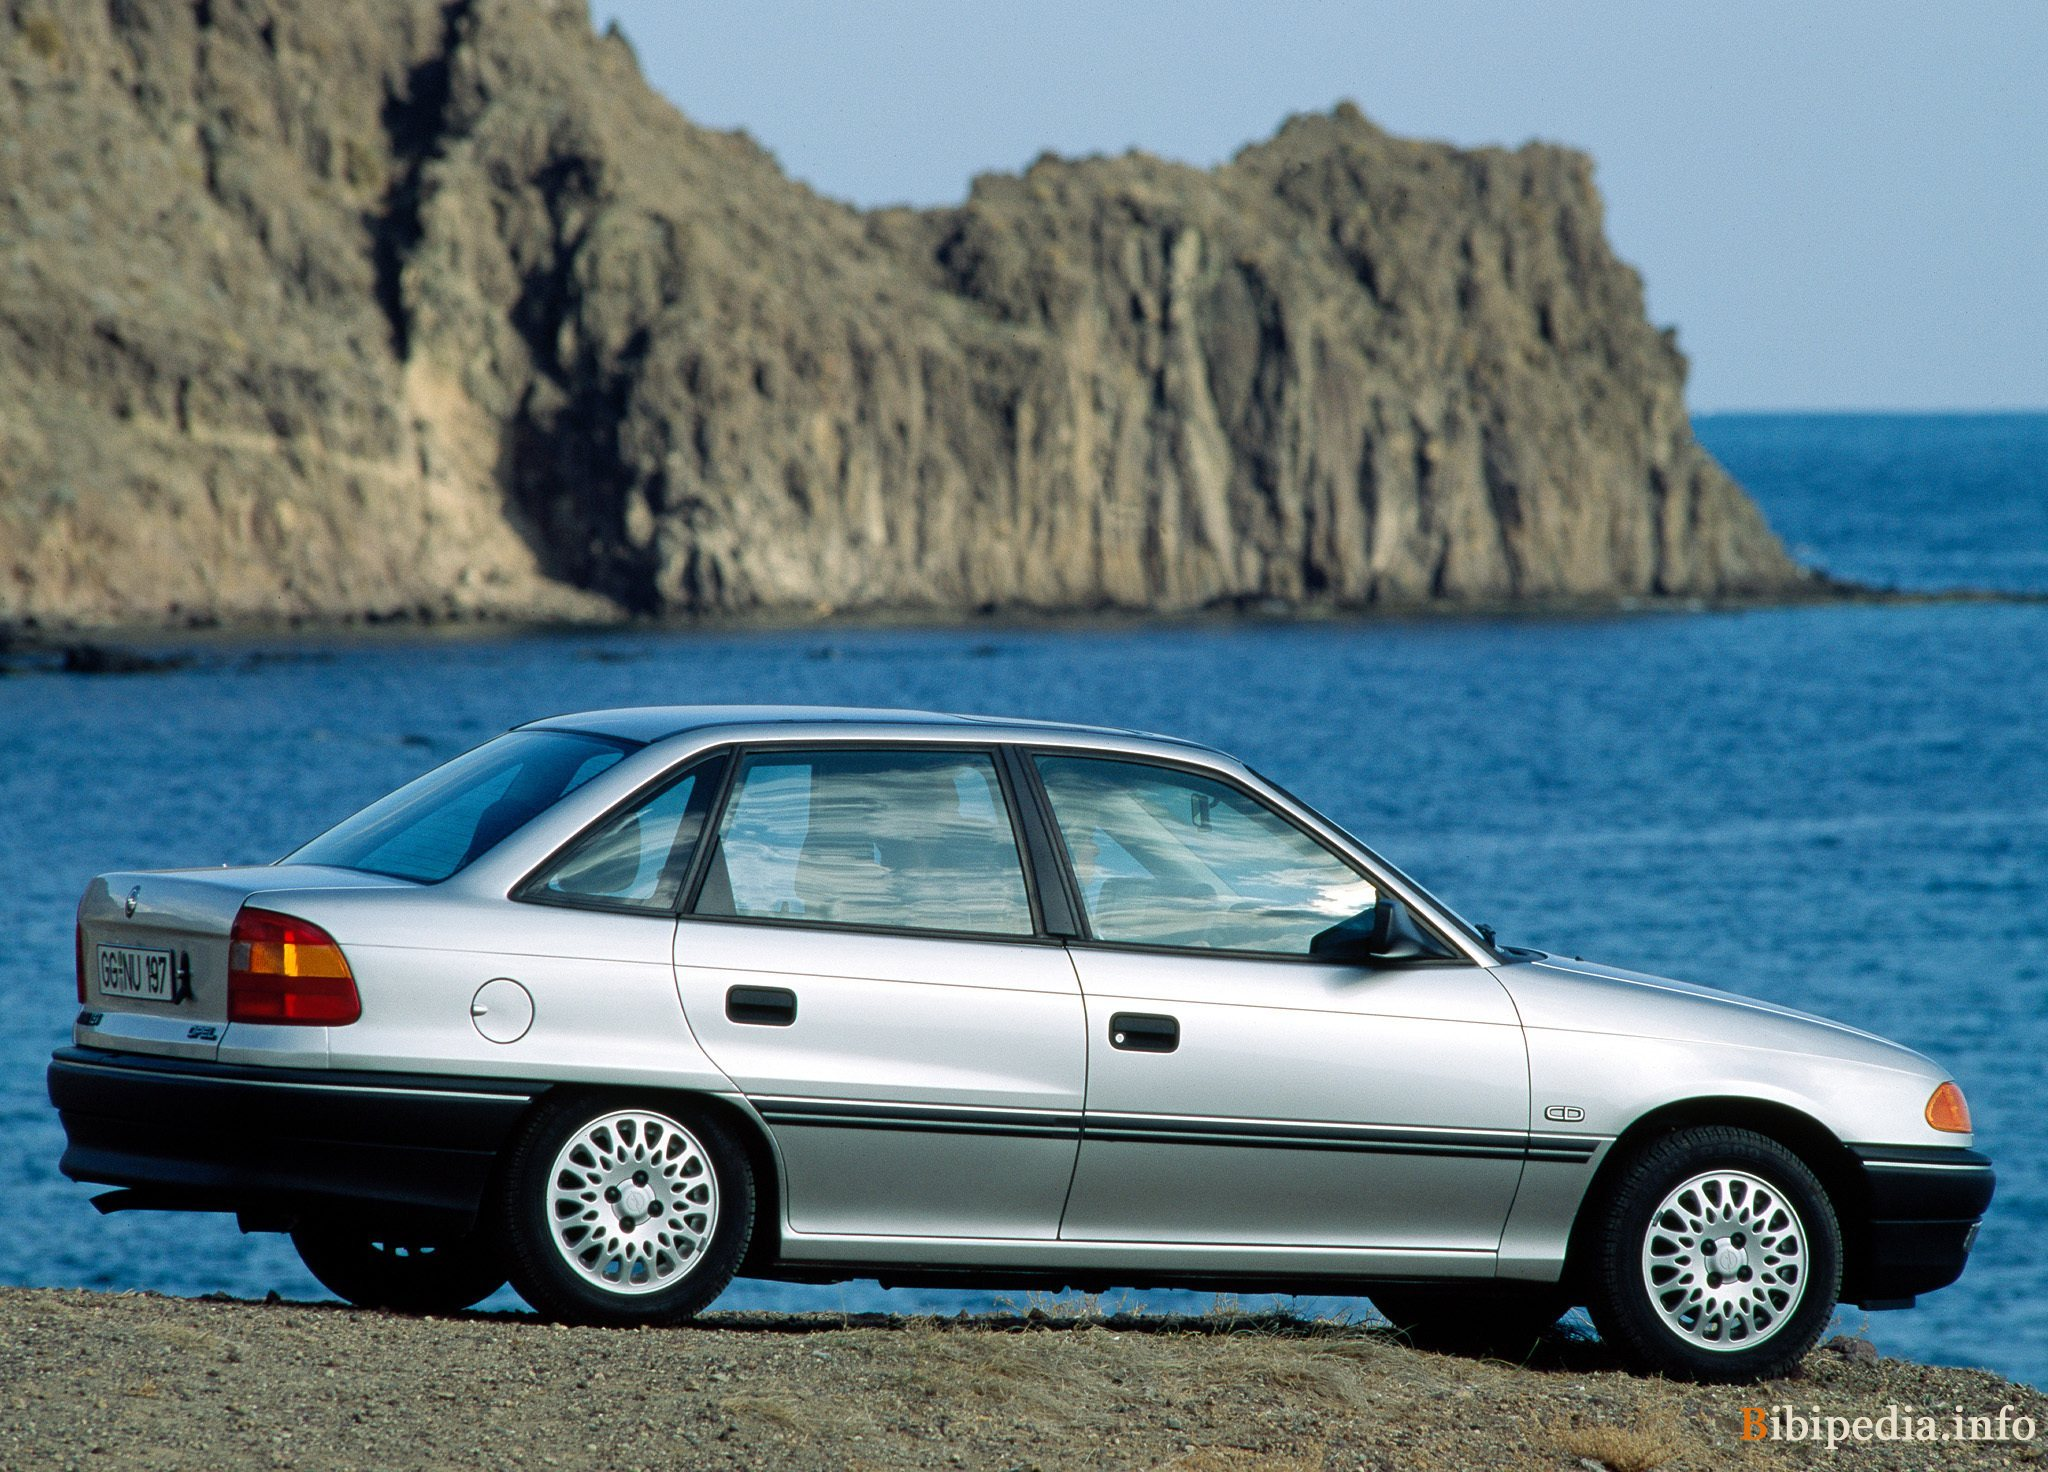 1992 Opel Astra Sedan 4-door